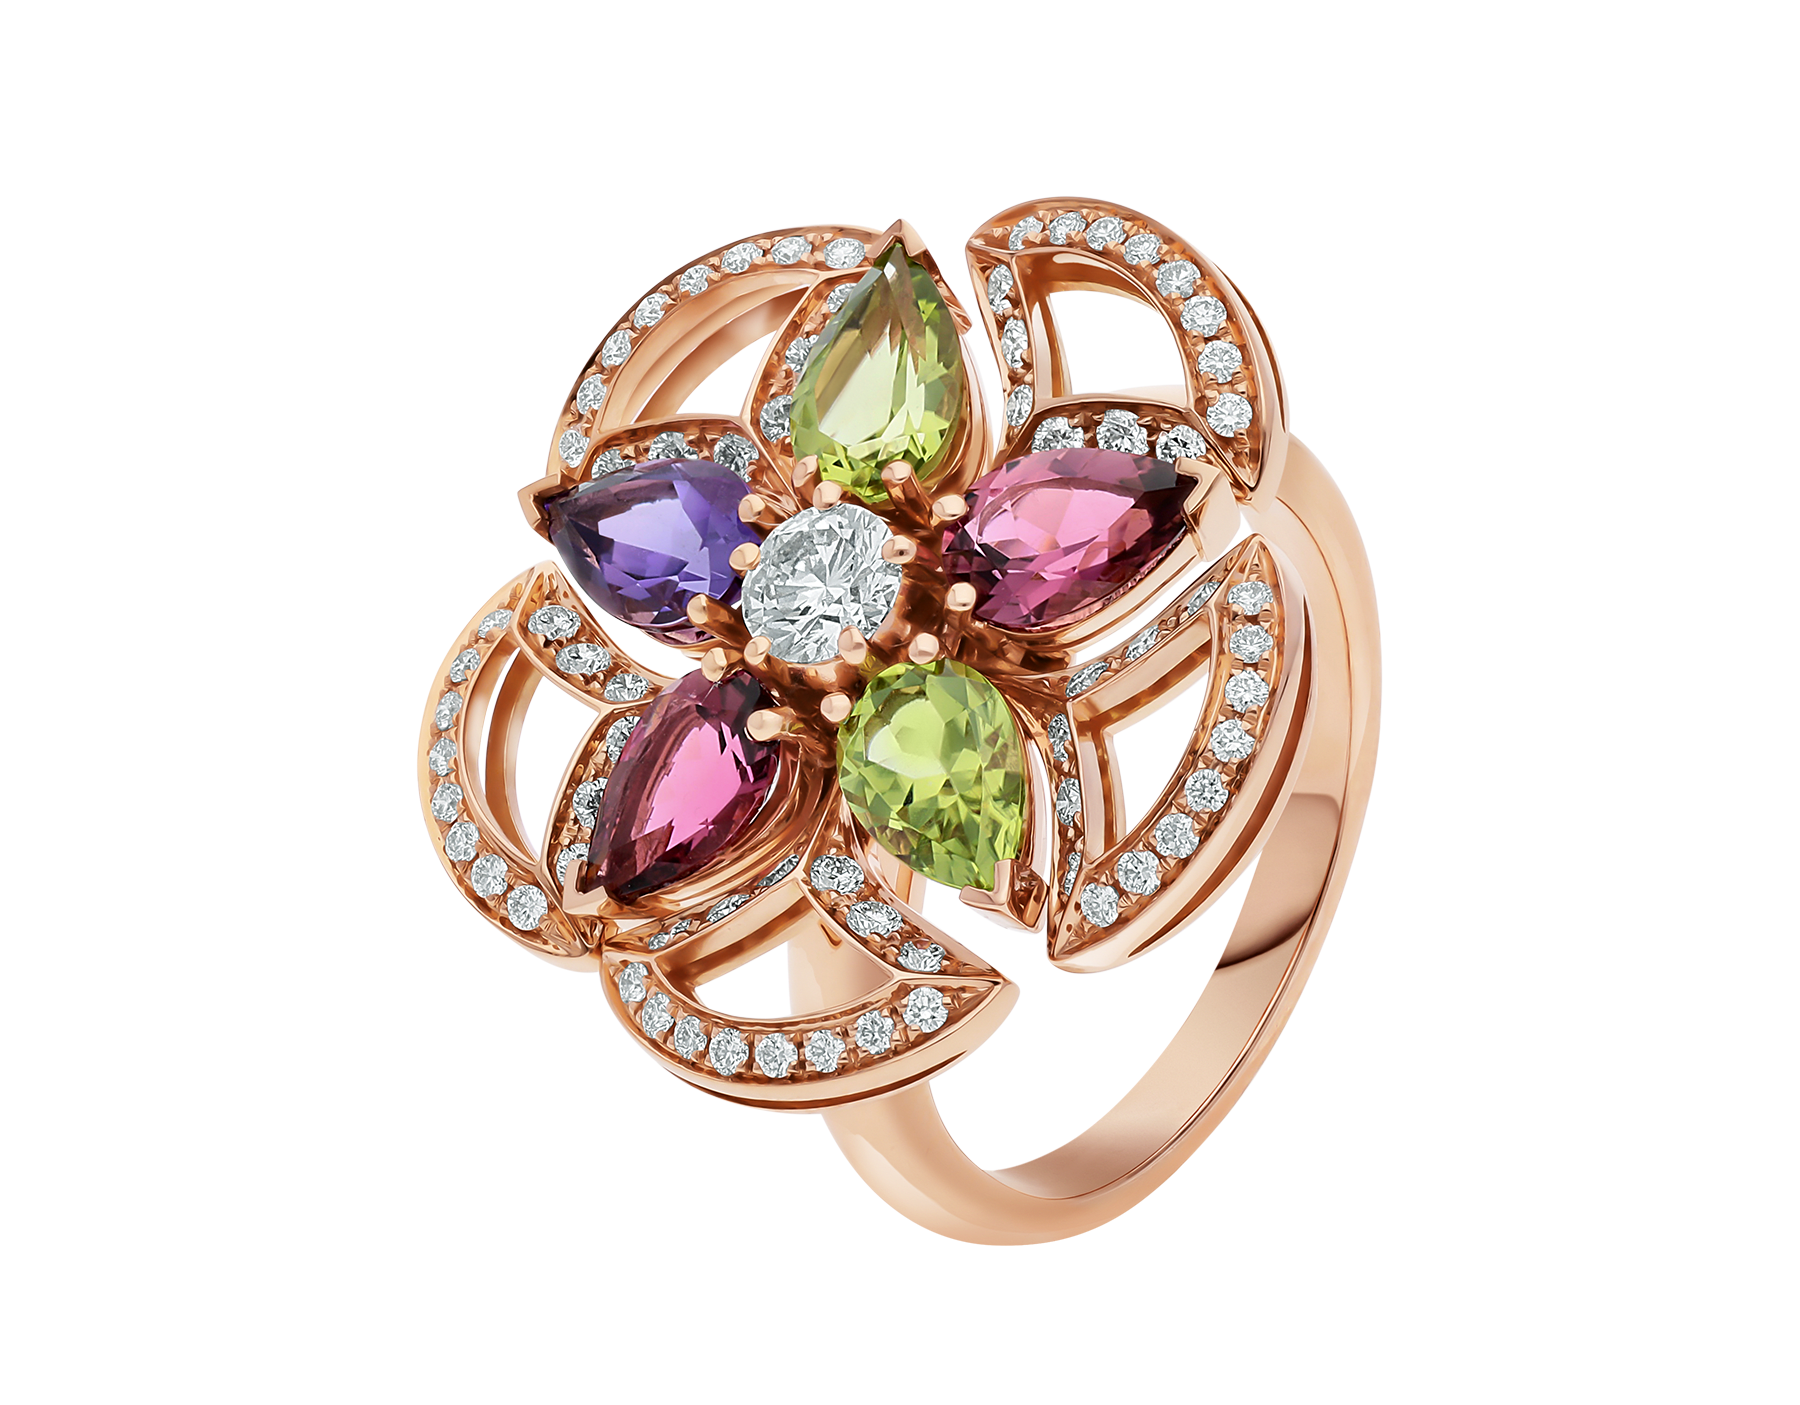 DIVAS' DREAM 18 kt rose gold ring set with coloured gemstones, a brilliant-cut diamond and pavé diamonds AN858421 image 1